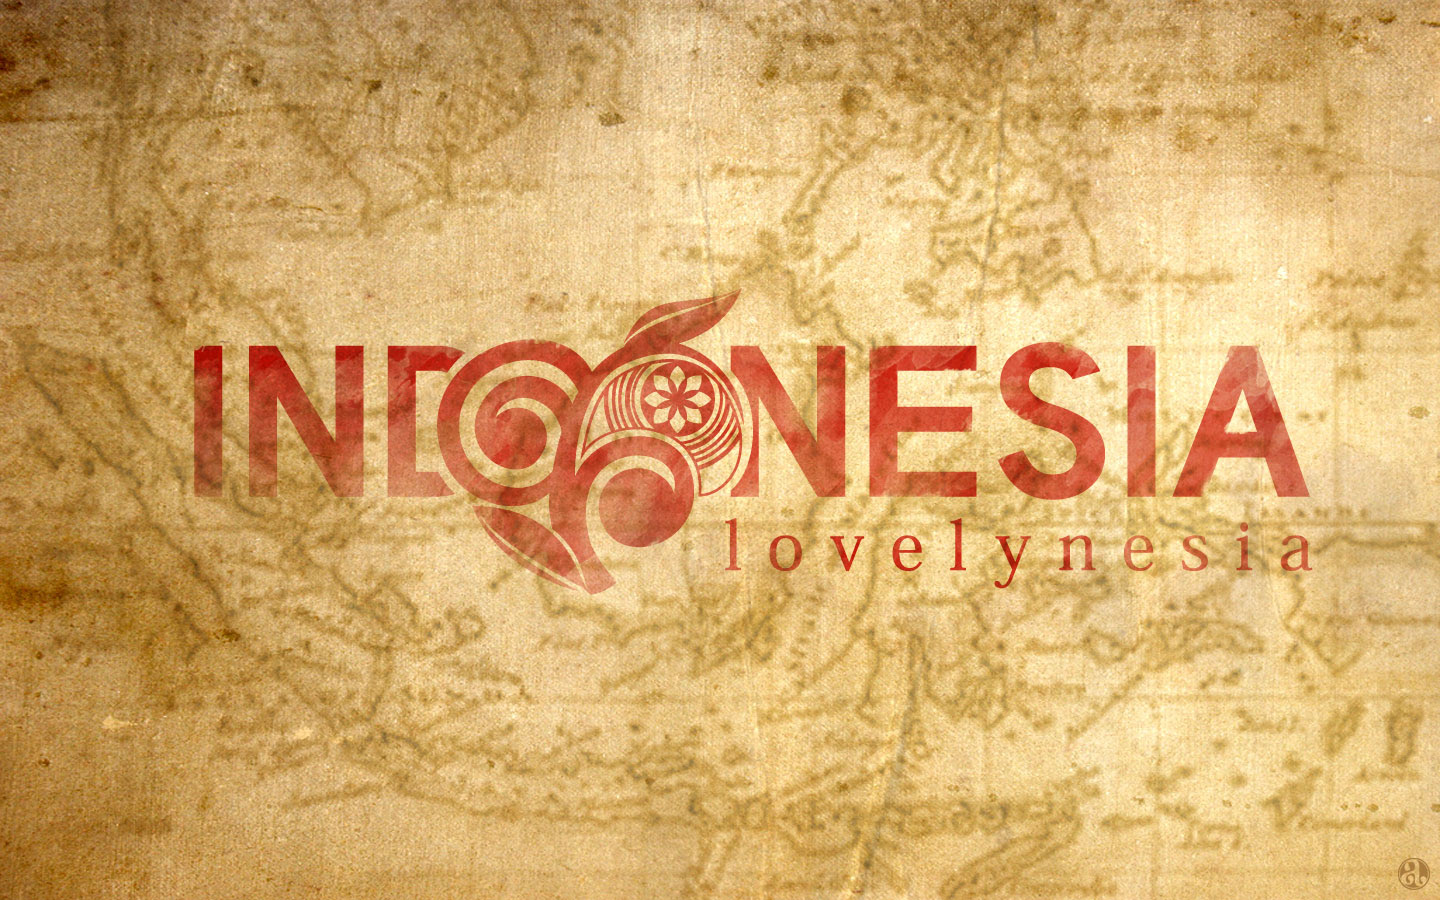 indonesia, lovelynesia by mongkih on DeviantArt